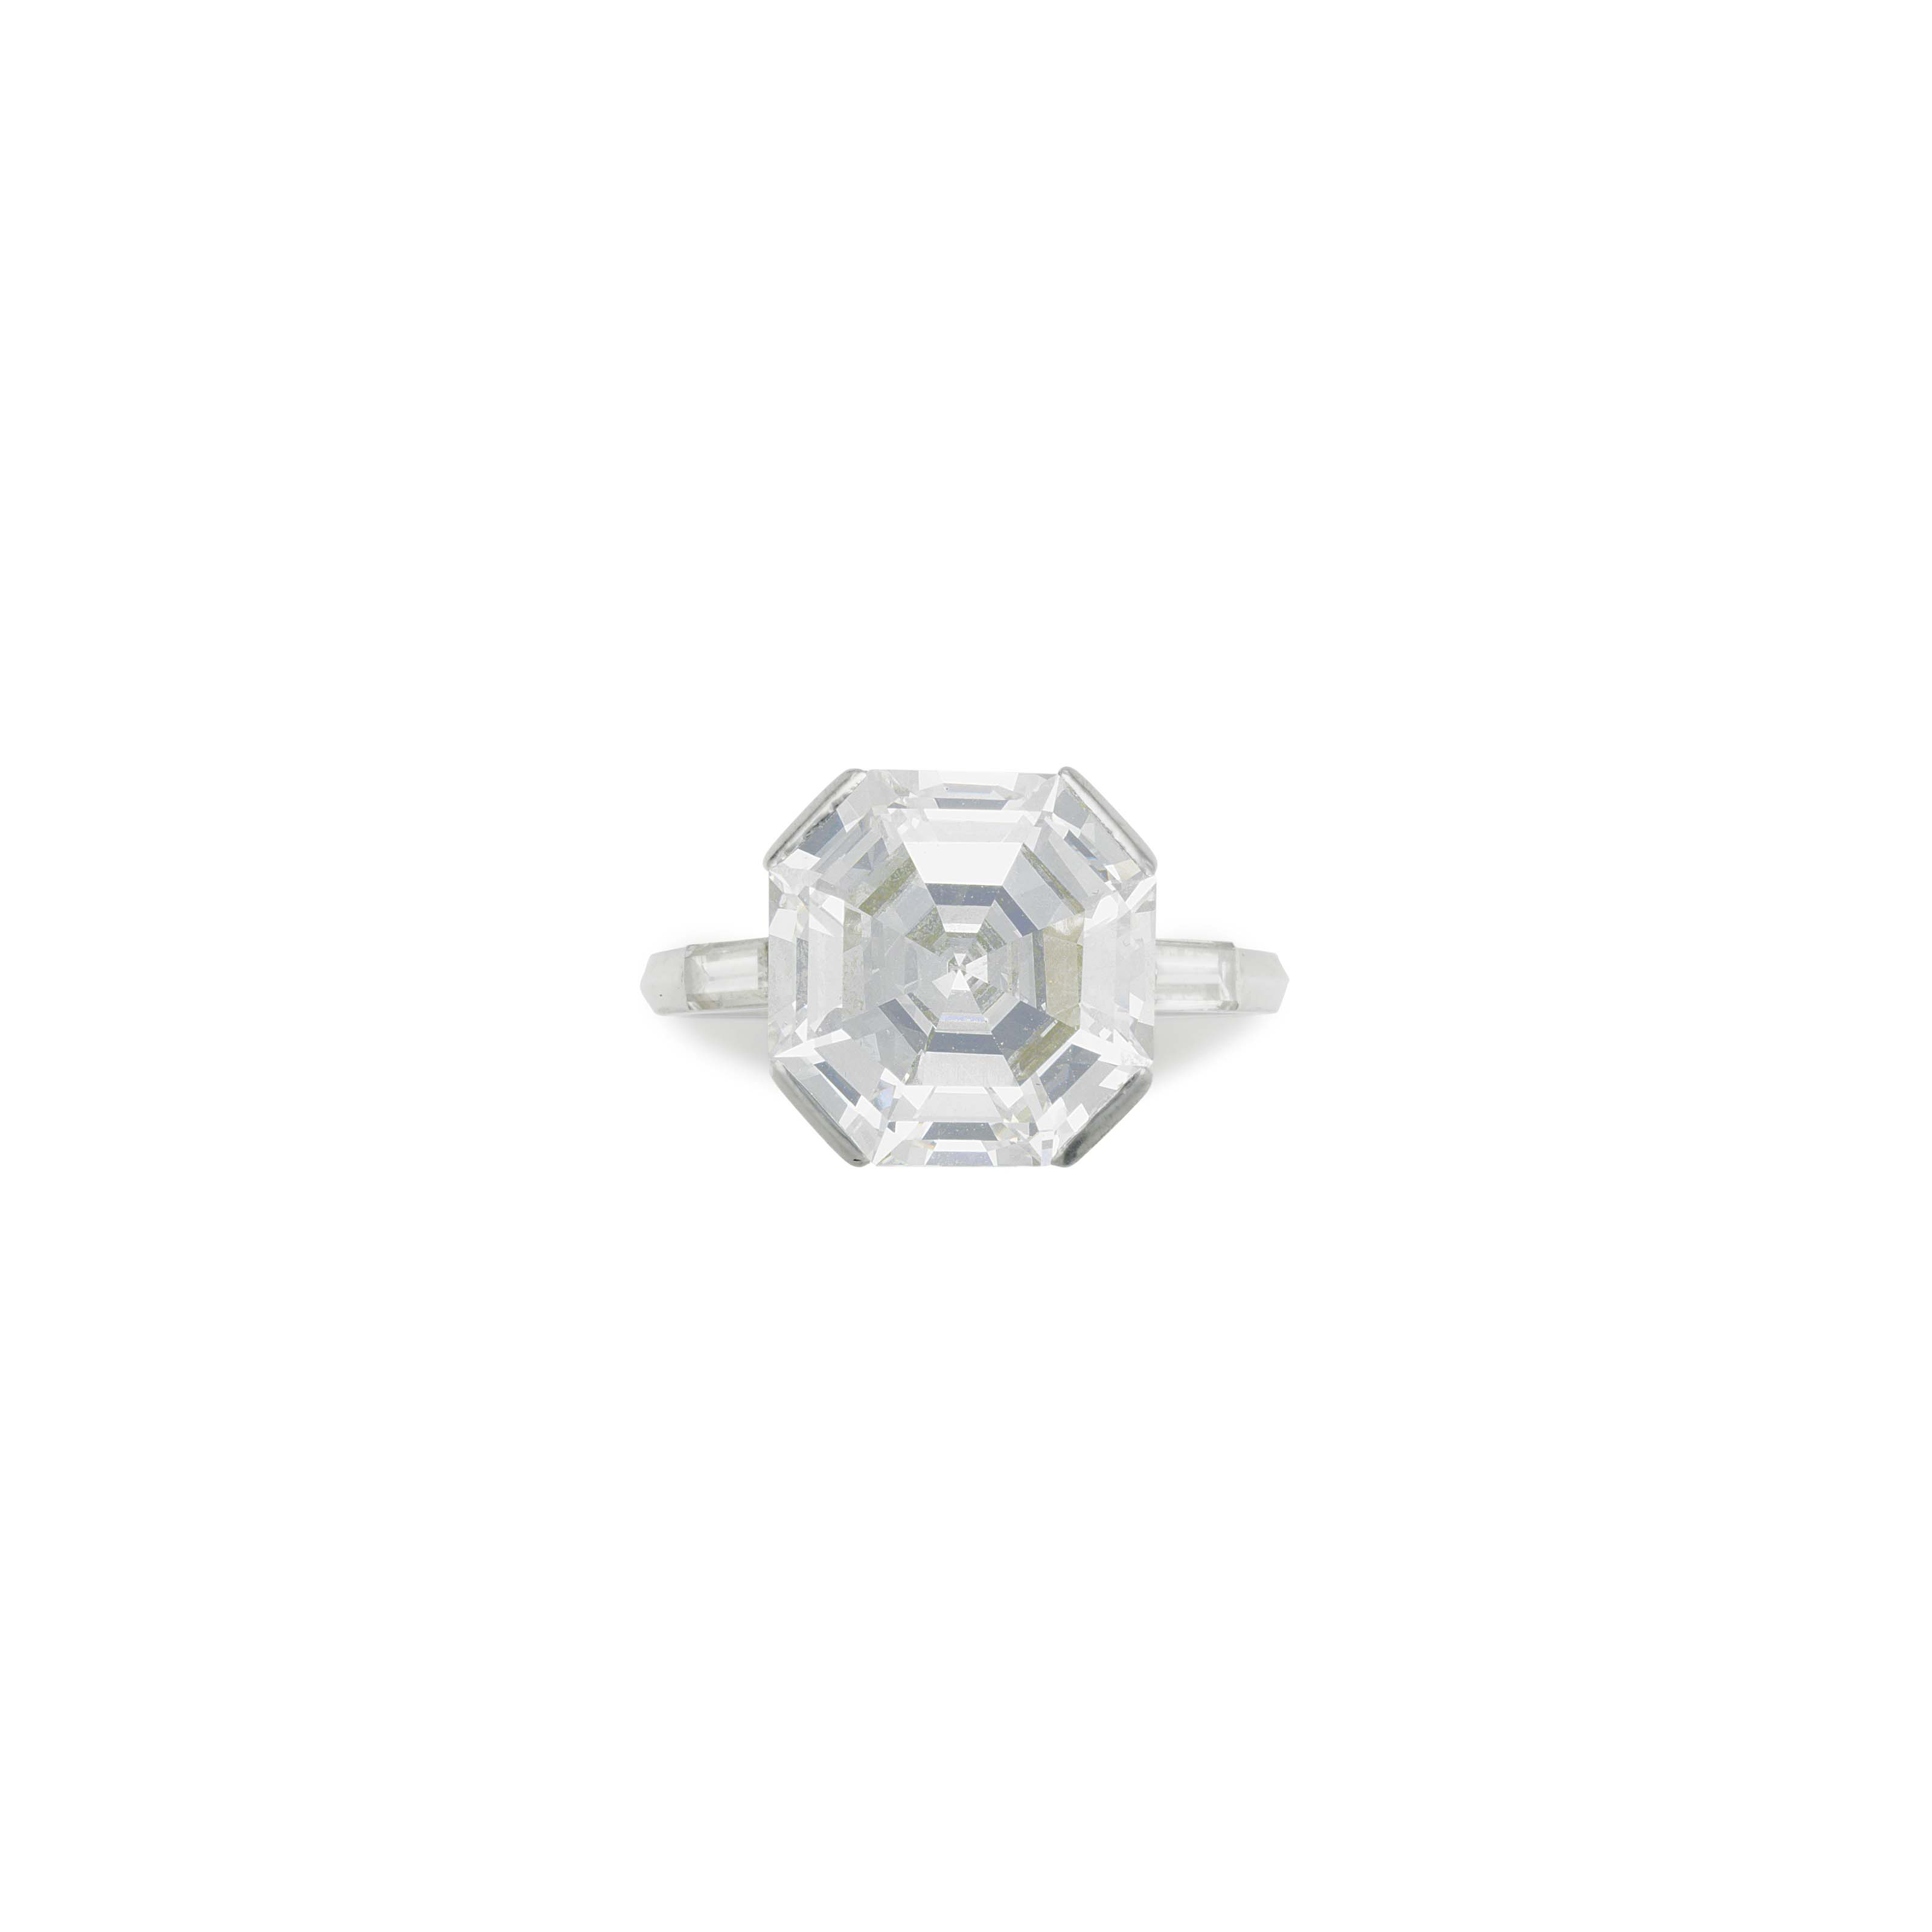 AN ART DECO DIAMOND RING, BY LACLOCHE FRÈRES